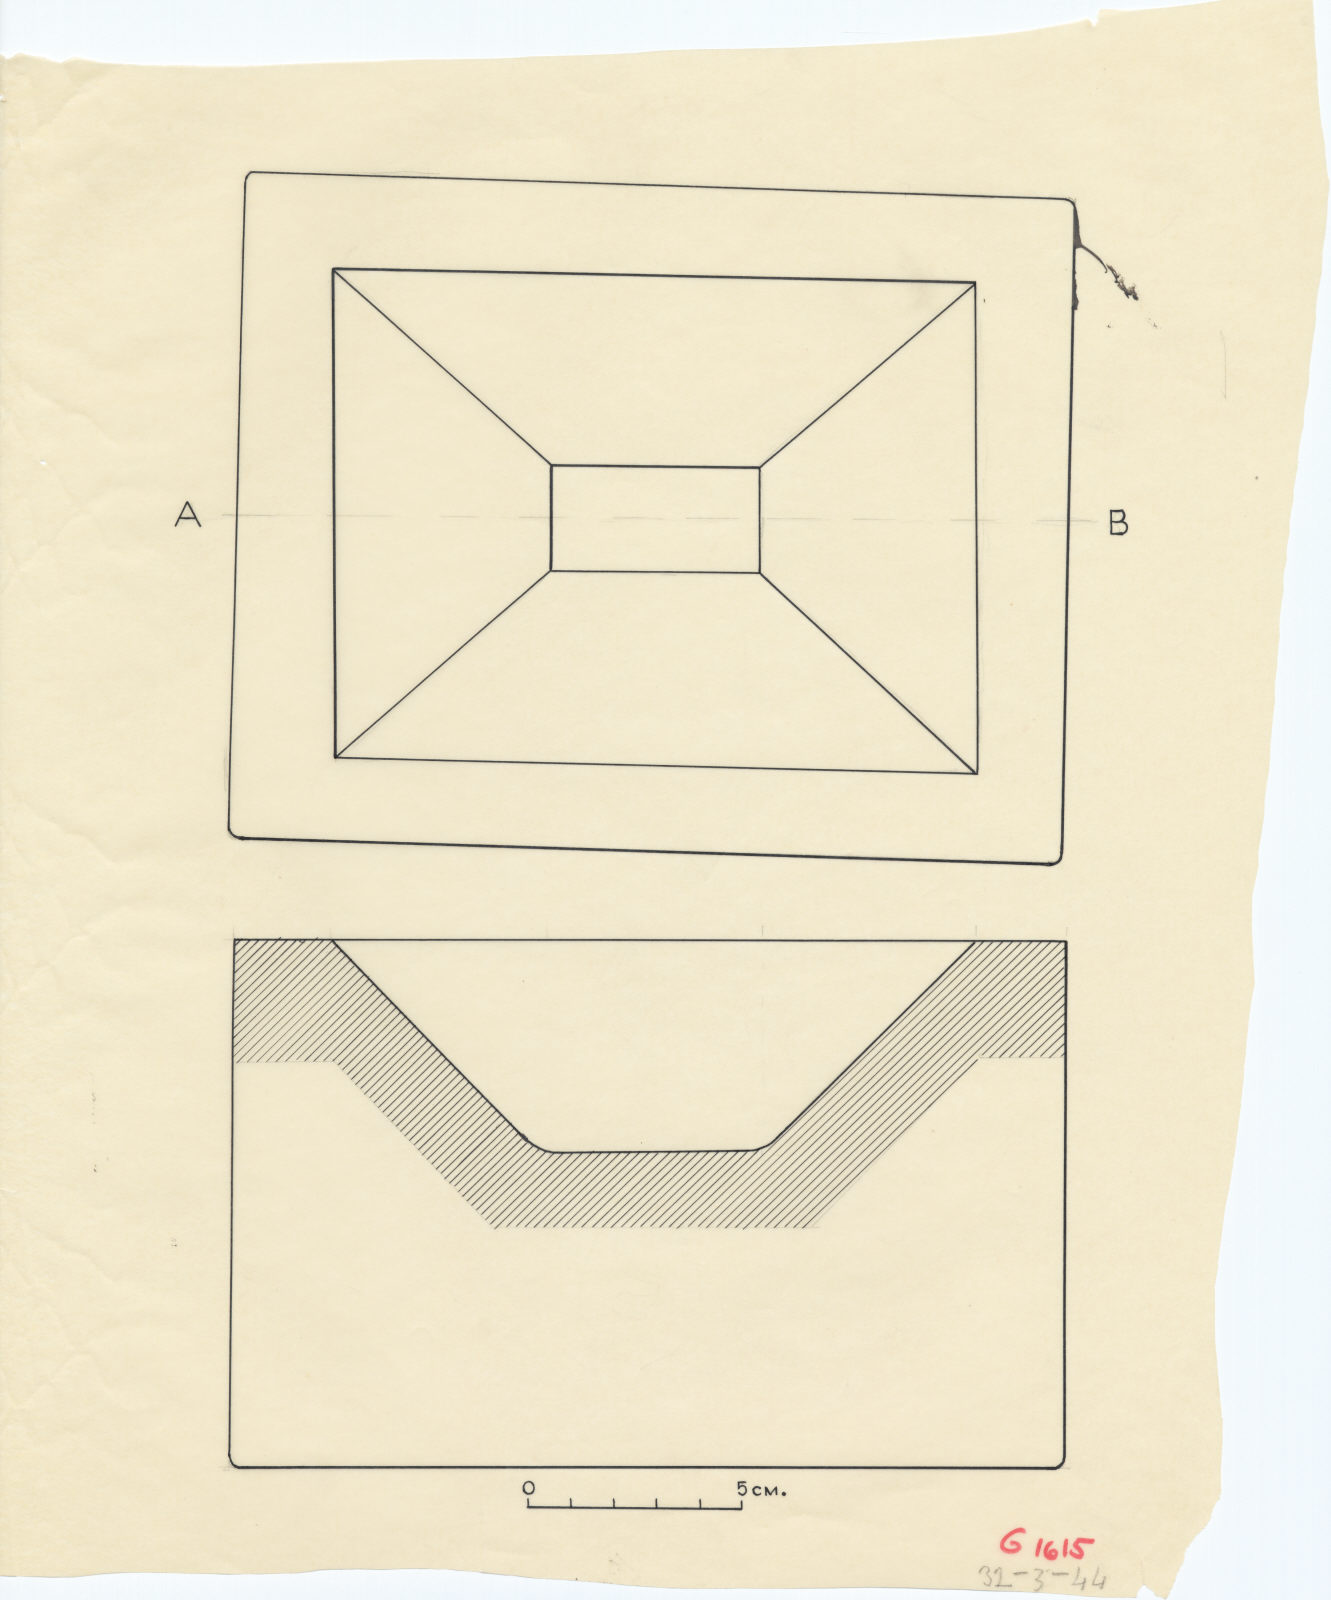 Drawings: offering basin from G 1615